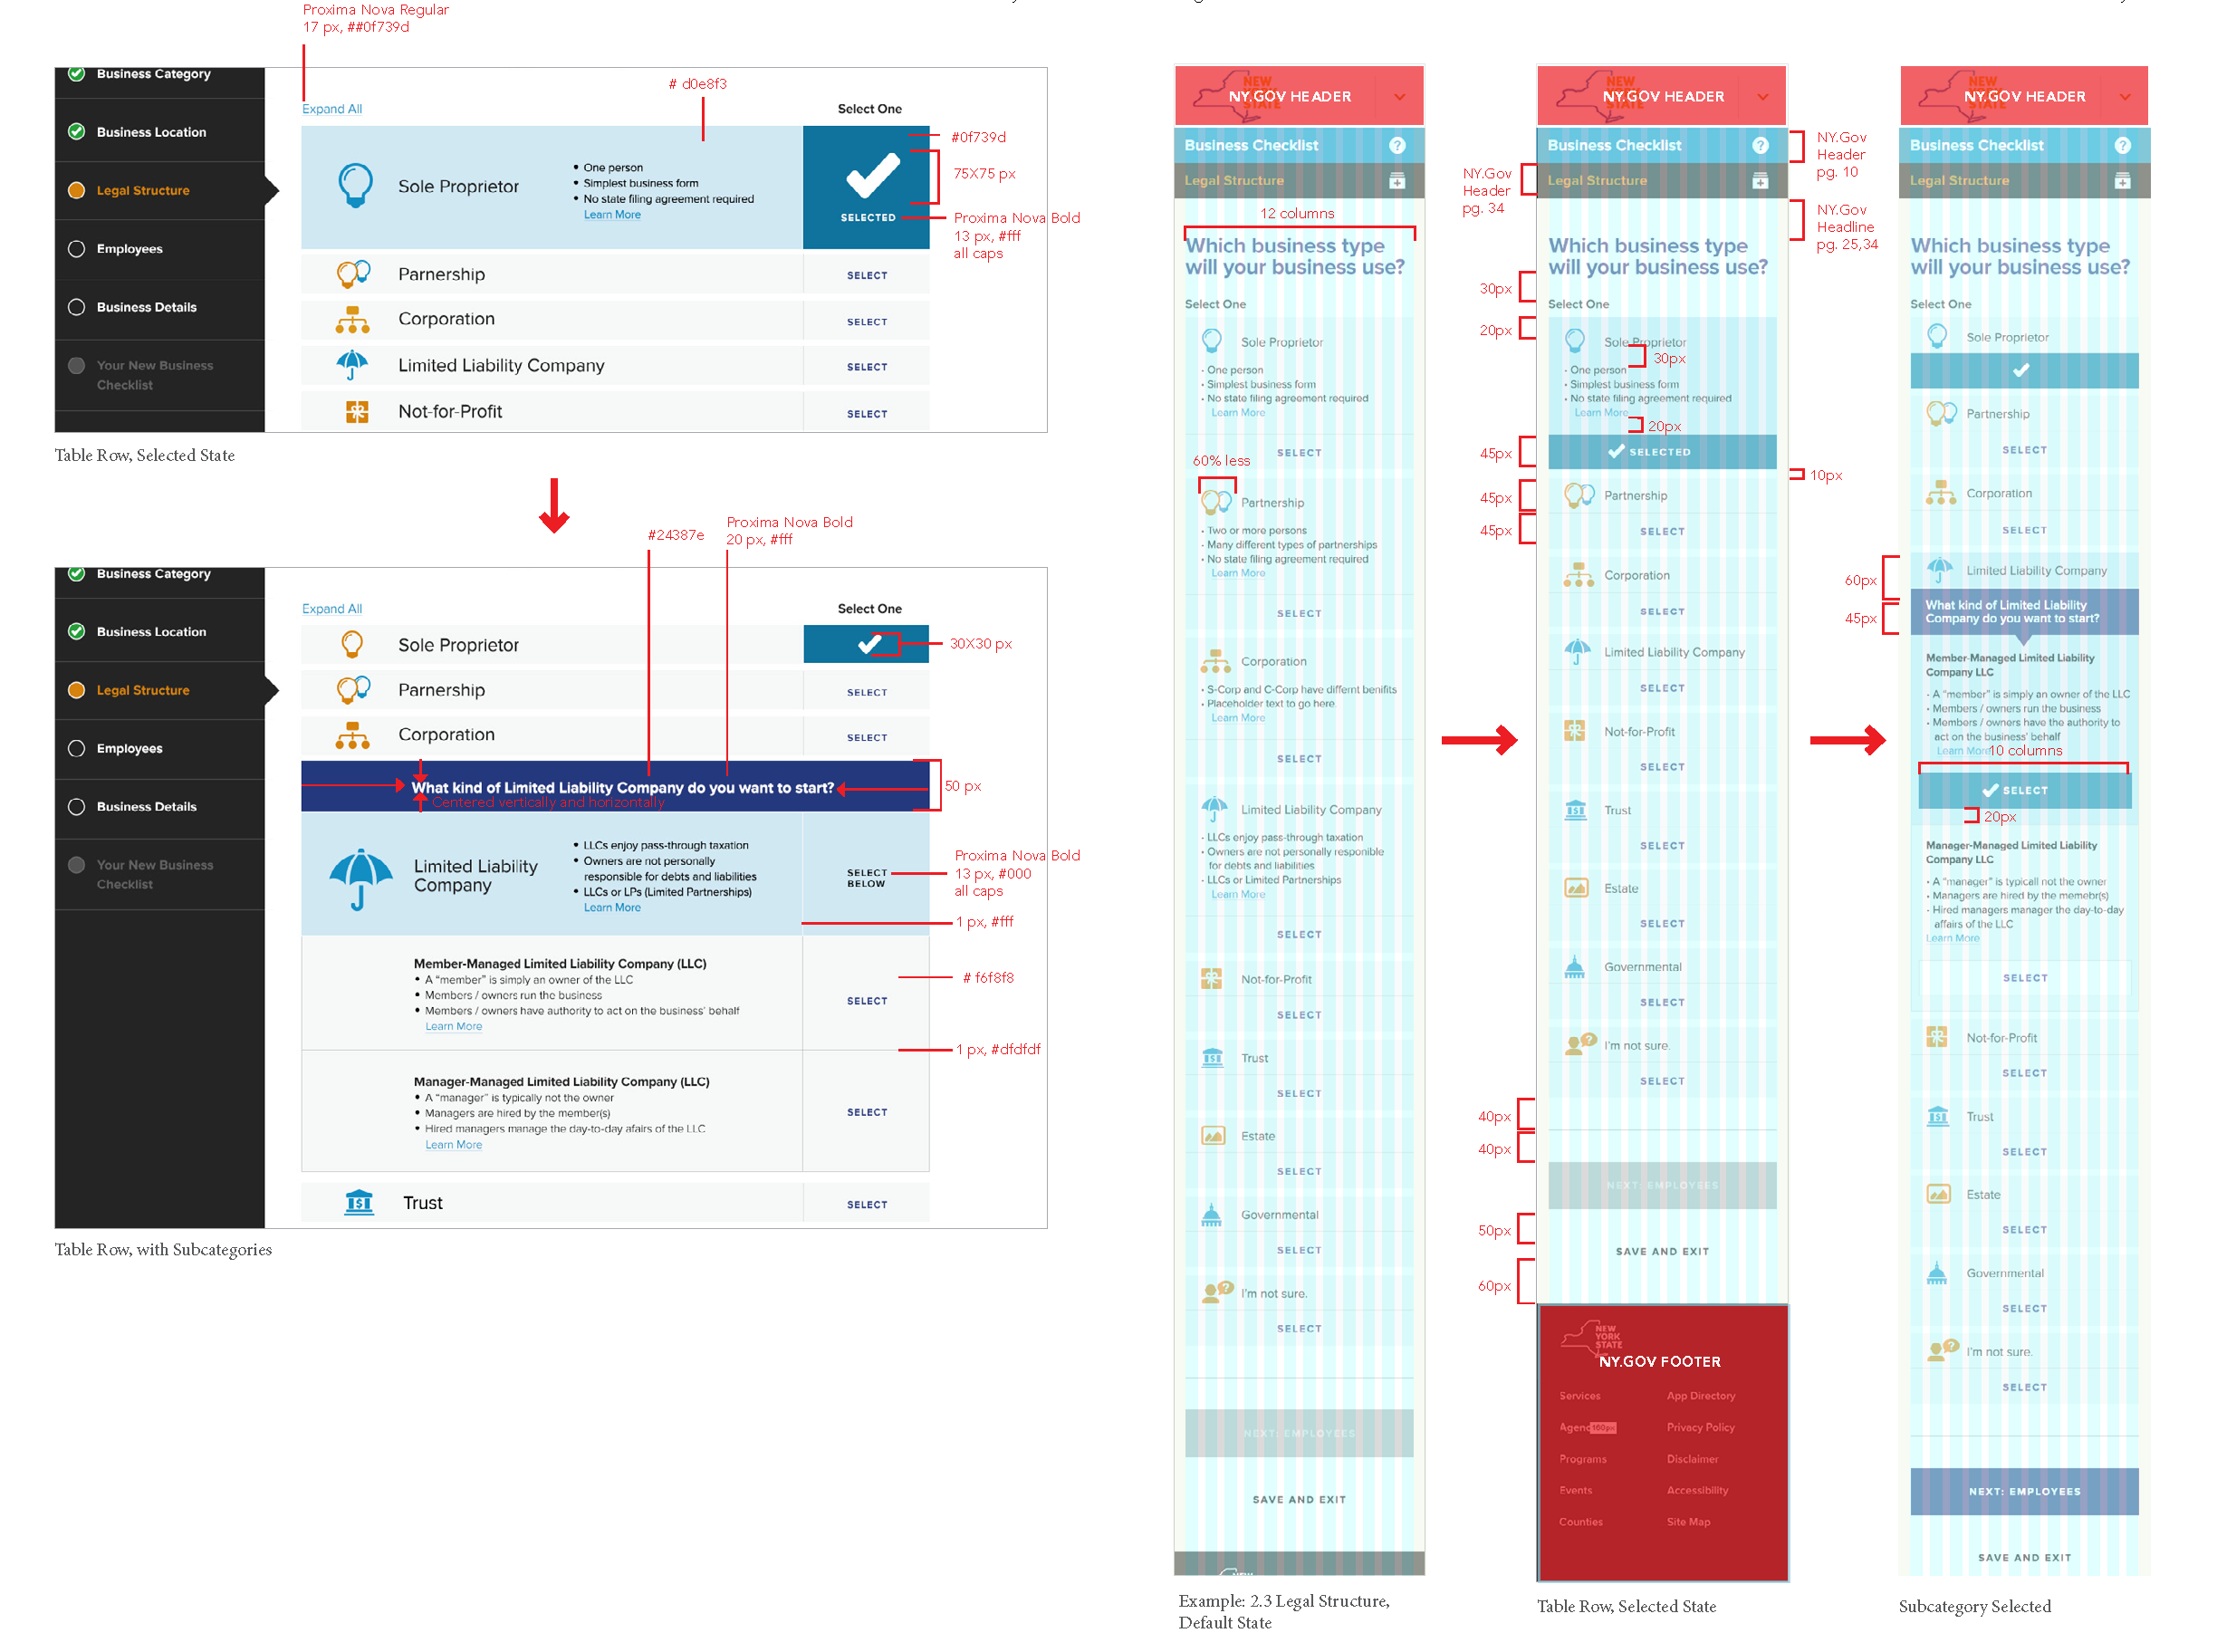 TJC_NYBE_UXDesign_Batch1and2_DesignSpec_v02.0_Page_14.png